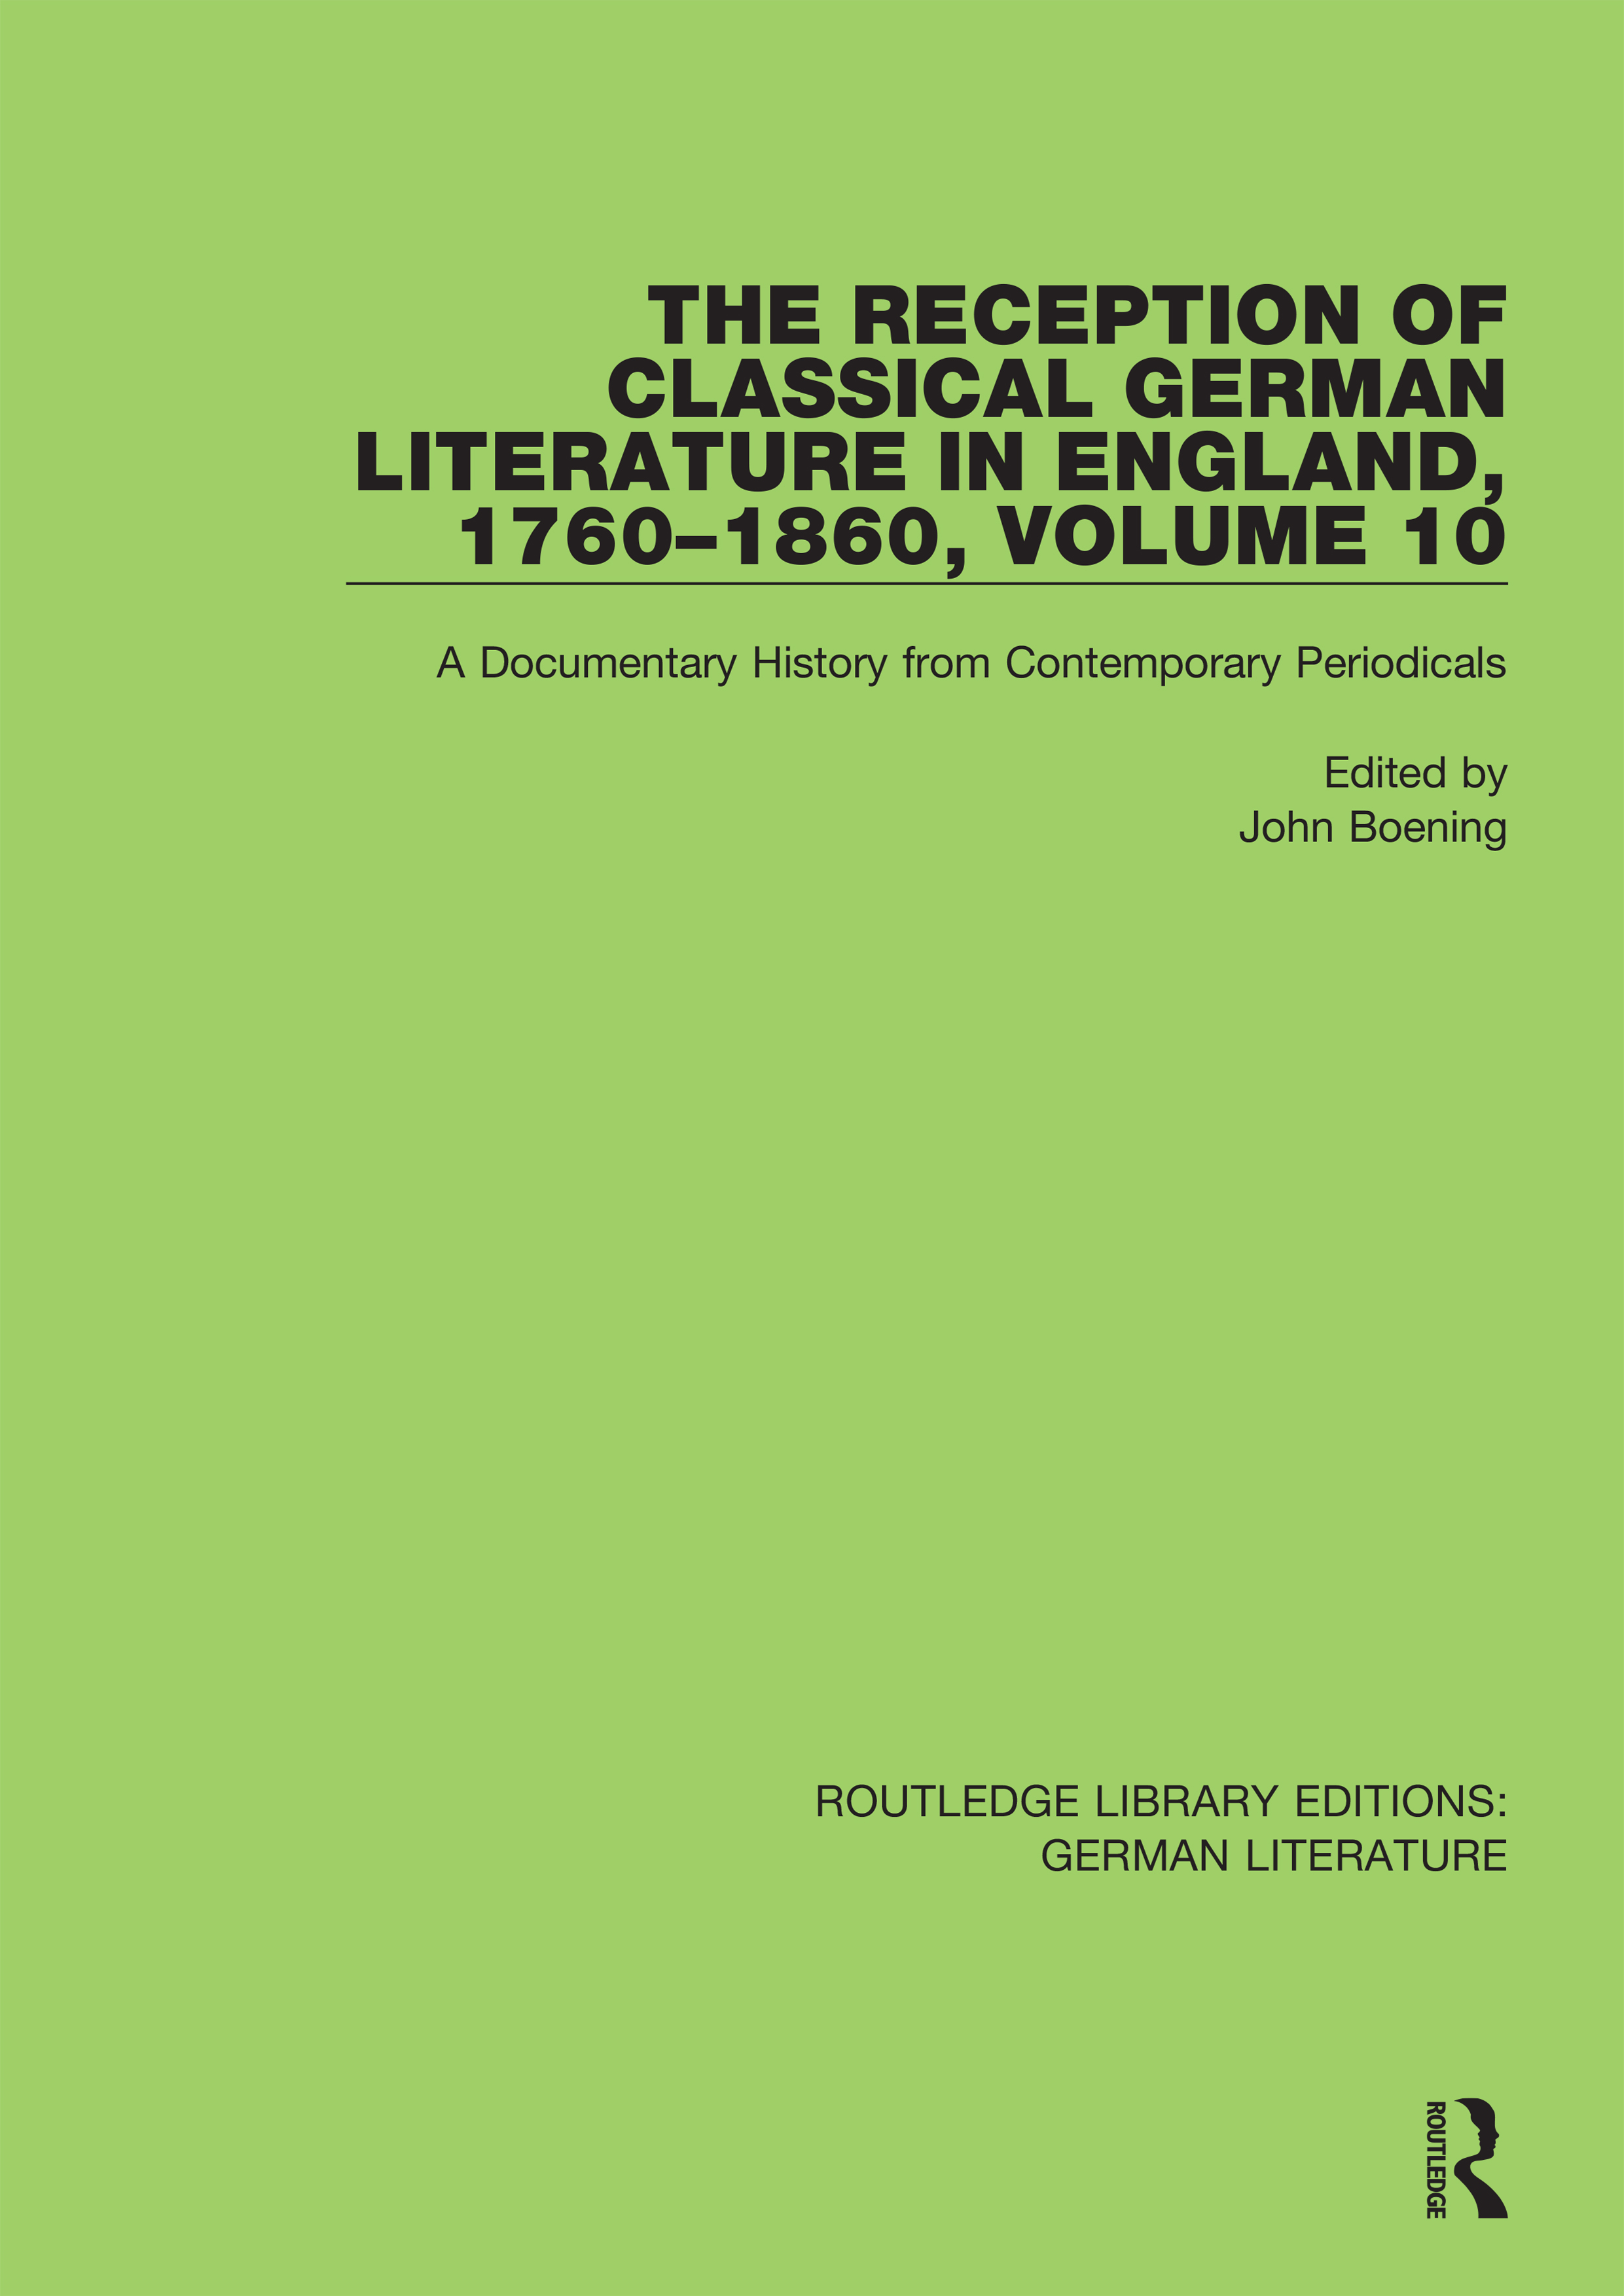 The Reception of Classical German Literature in England, 1760-1860, Volume 10: A Documentary History from Contemporary Periodicals book cover